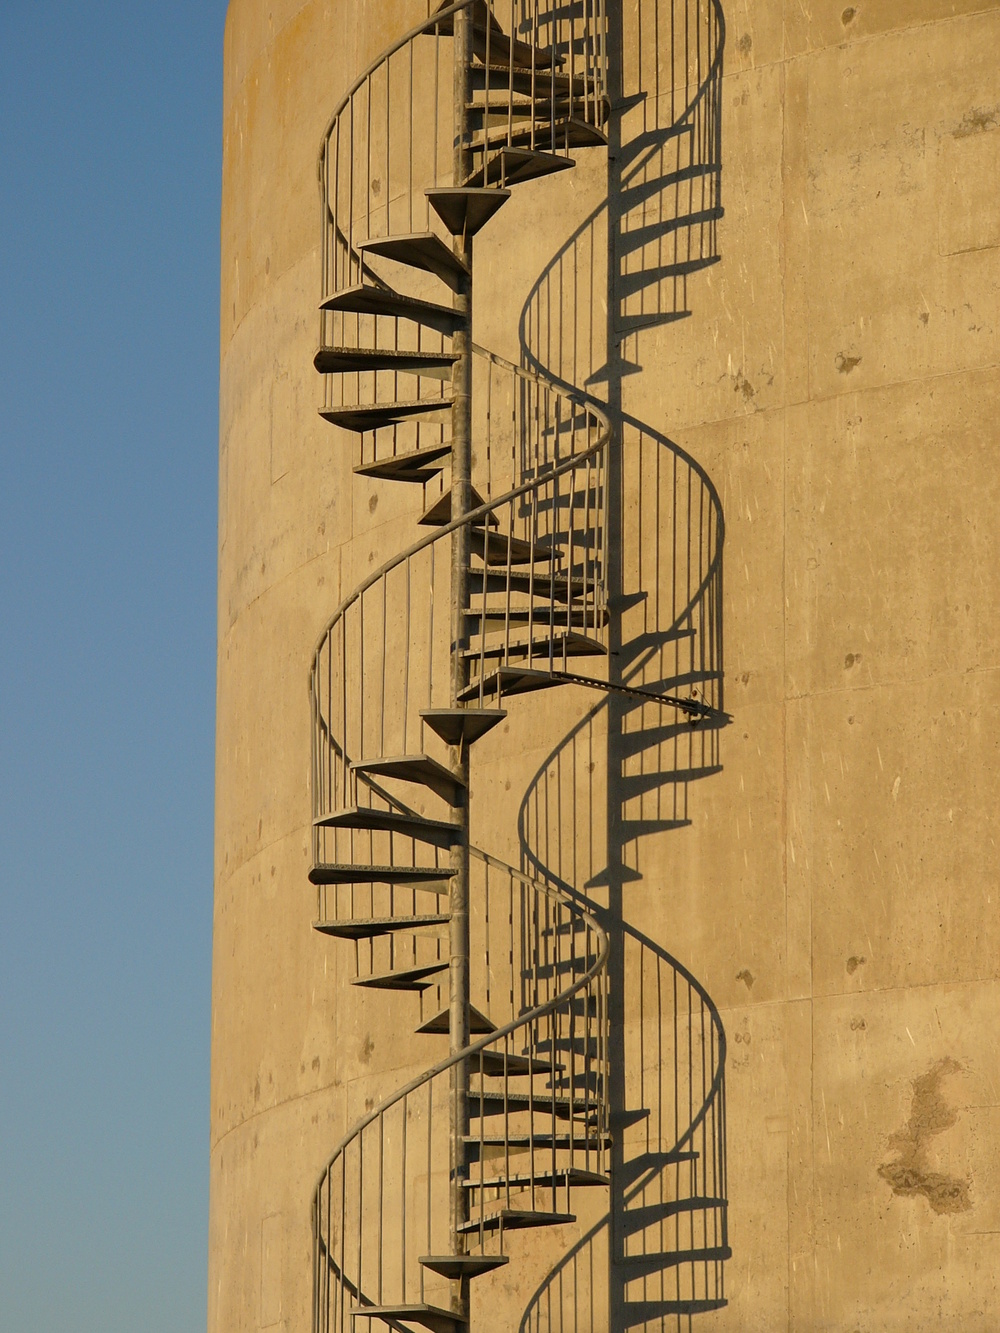 The Double Helix Staircase In Which Micro Biology